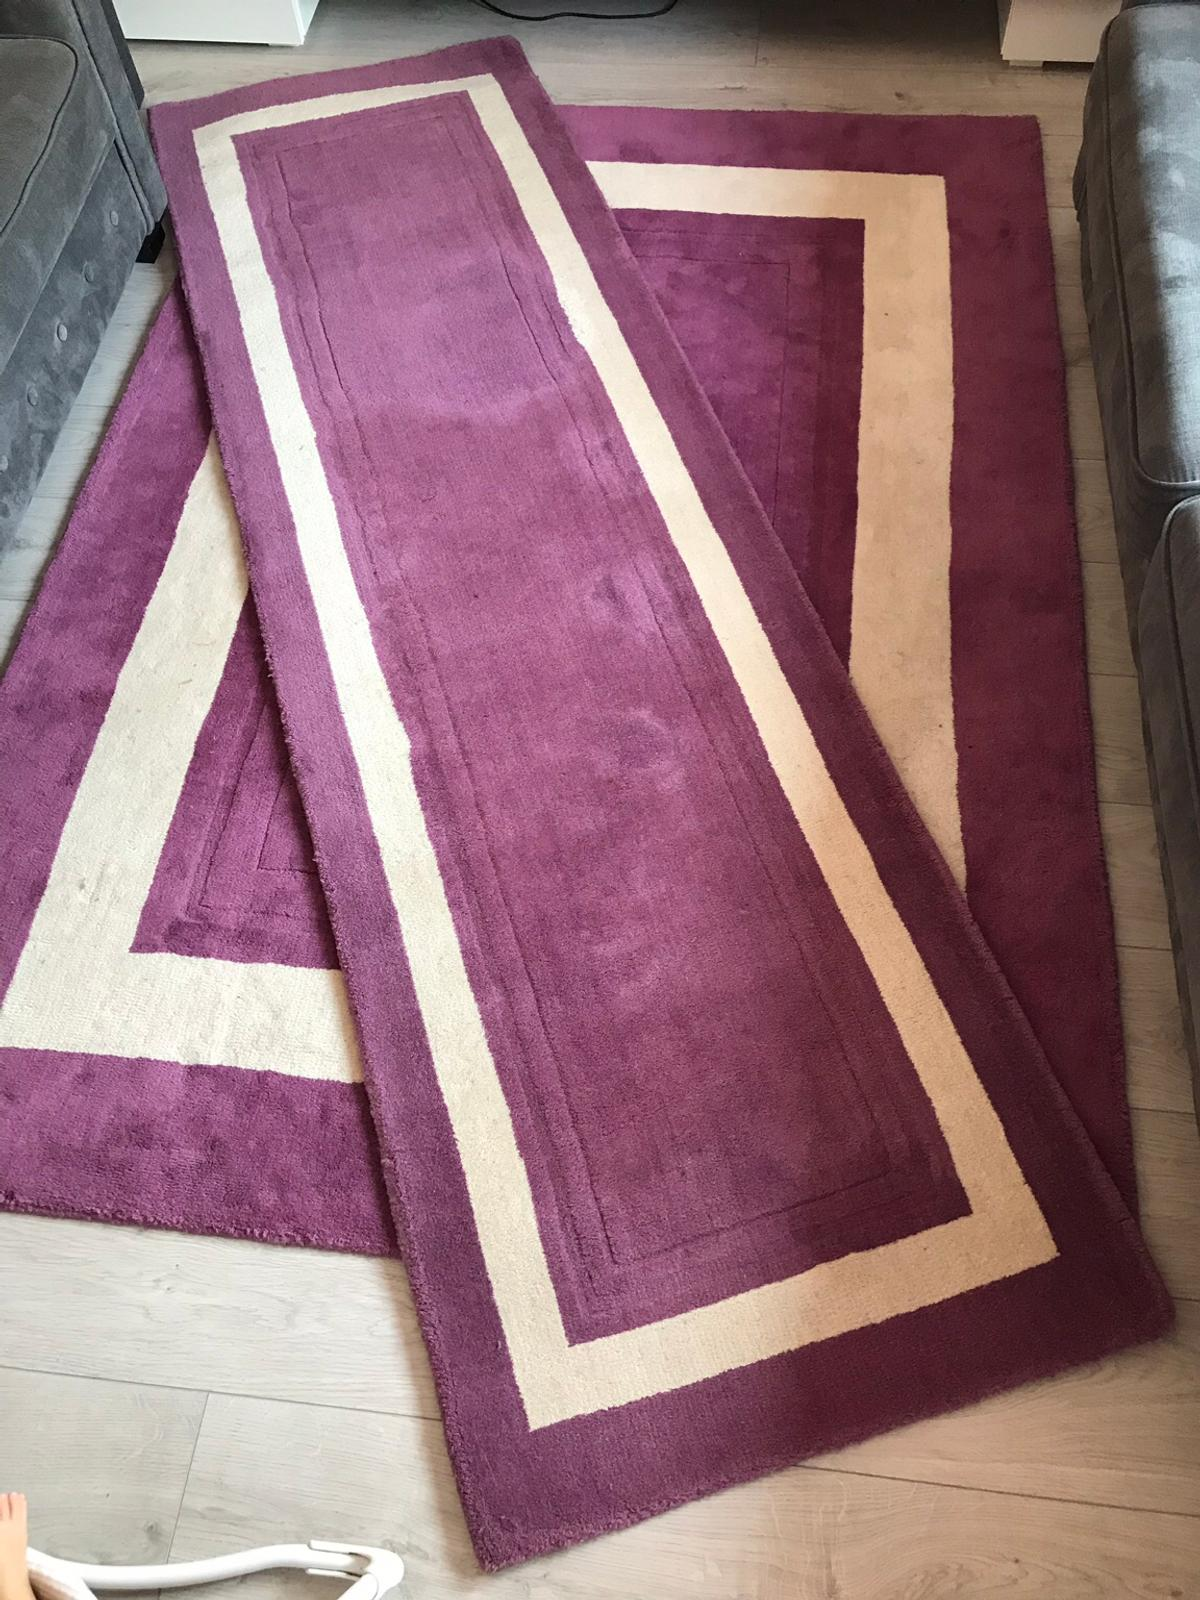 Laura Ashley Rugs In N14 London For